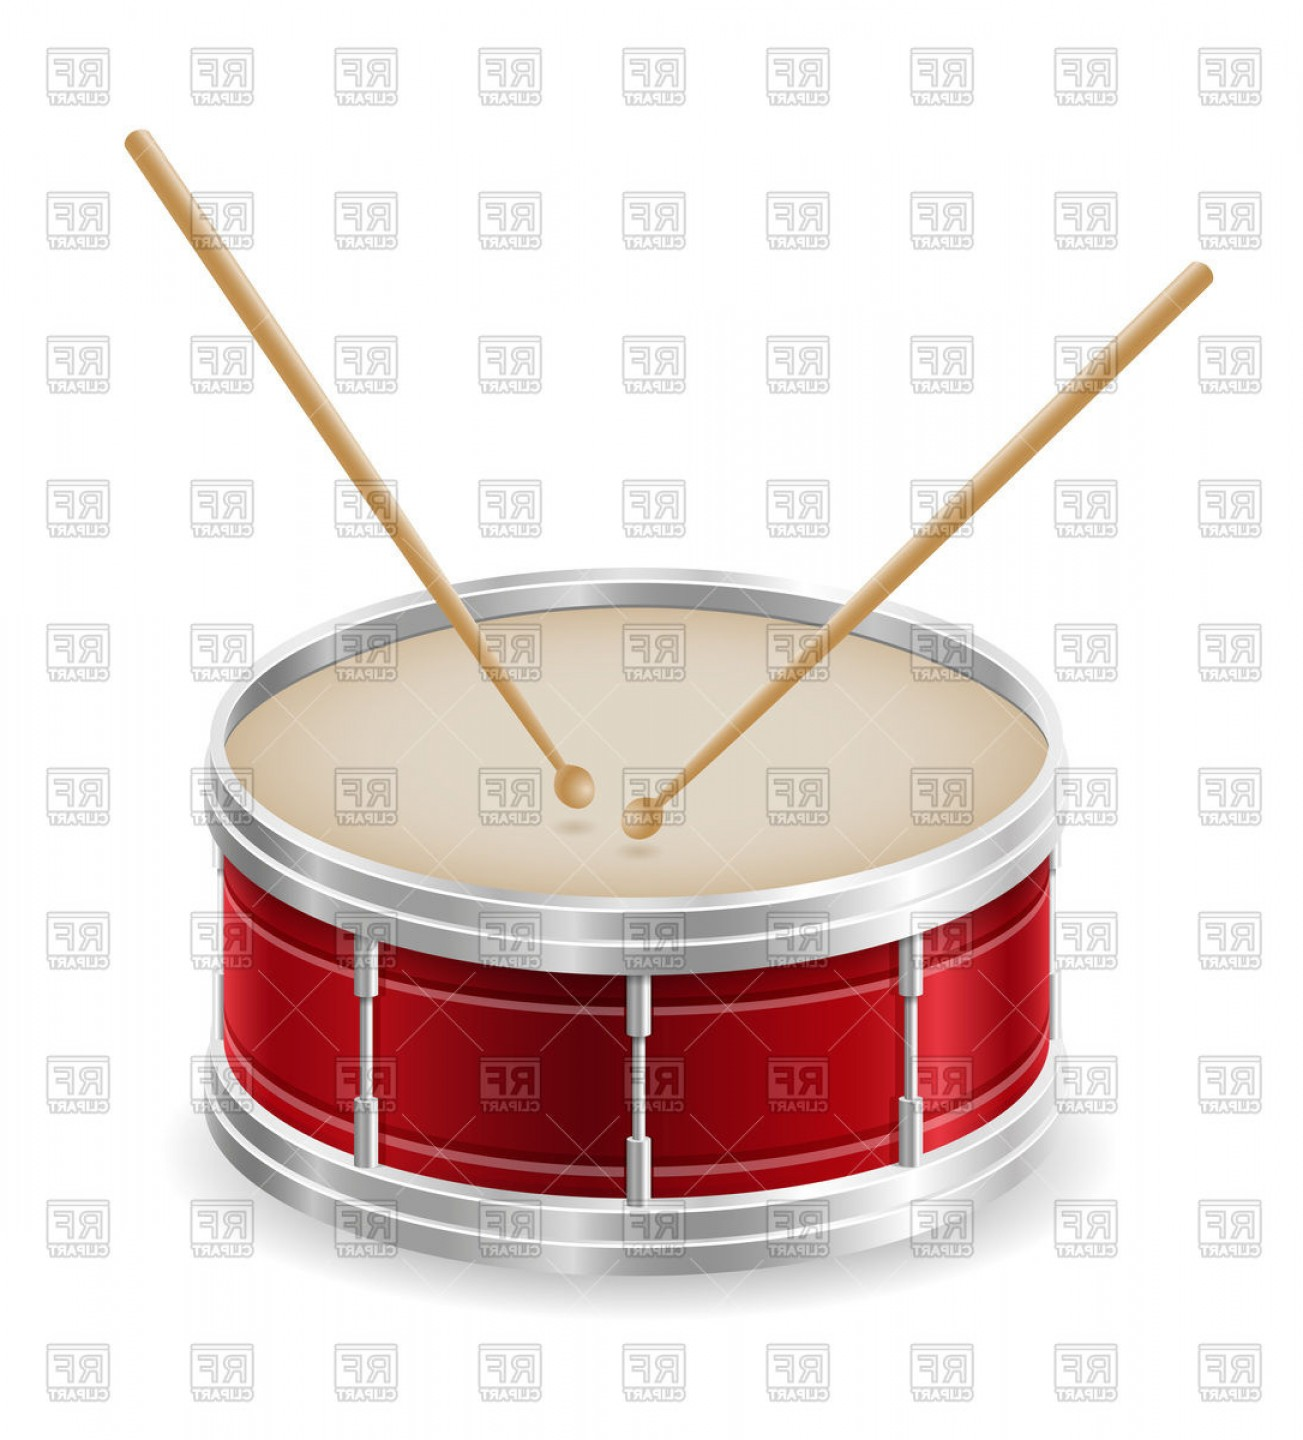 Drum Vector Art: Red Drum With Drumsticks Musical Instrument Vector Clipart